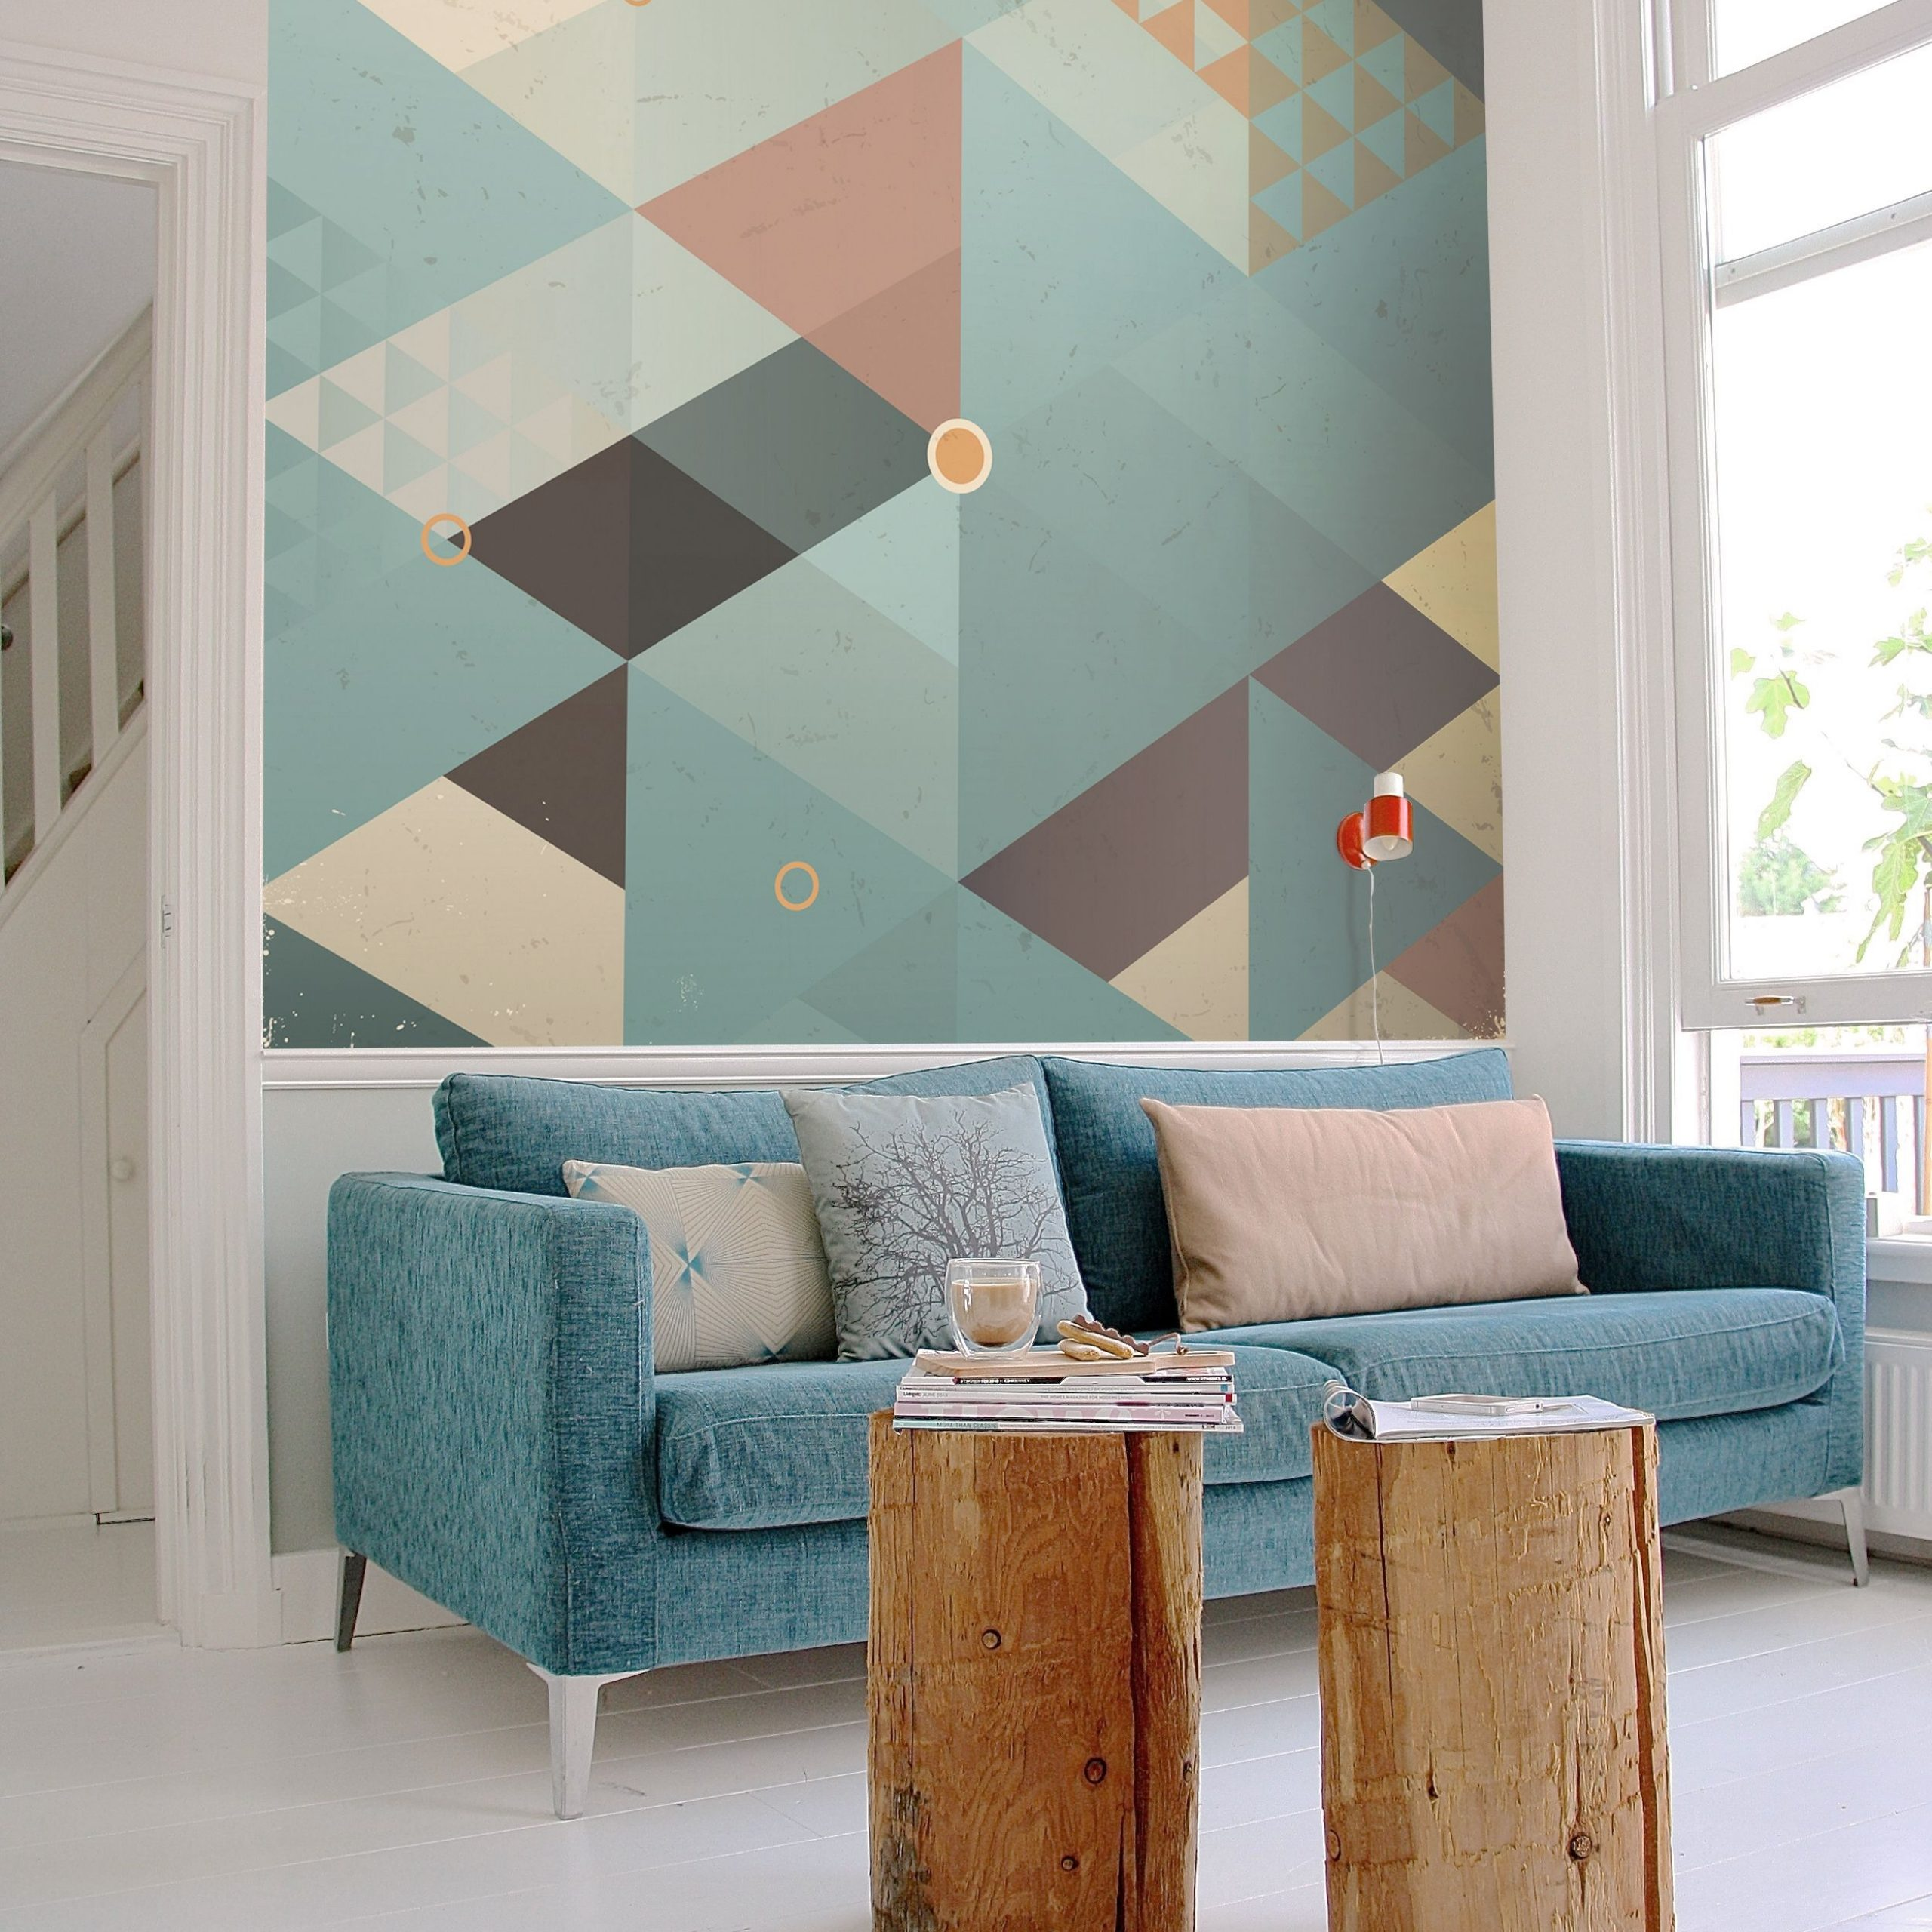 Delightful Cool Wall Art for Living Room Ideas On